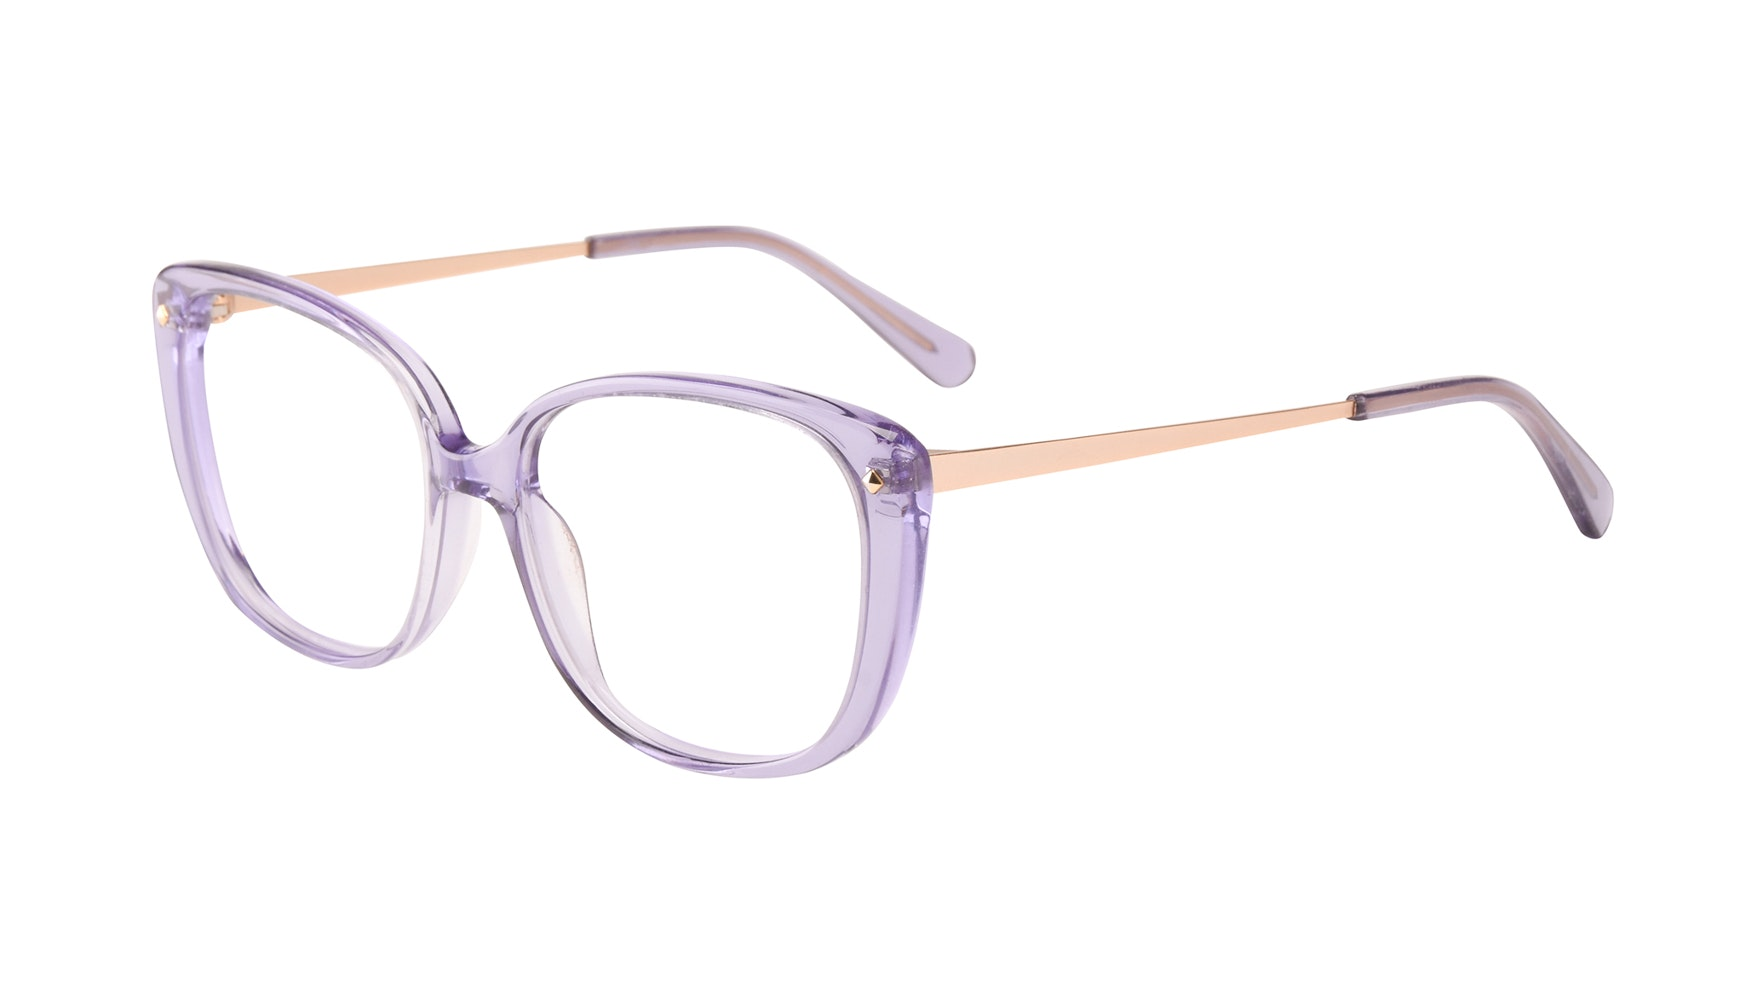 Affordable Fashion Glasses Square Eyeglasses Women Japonisme Lavender Tilt